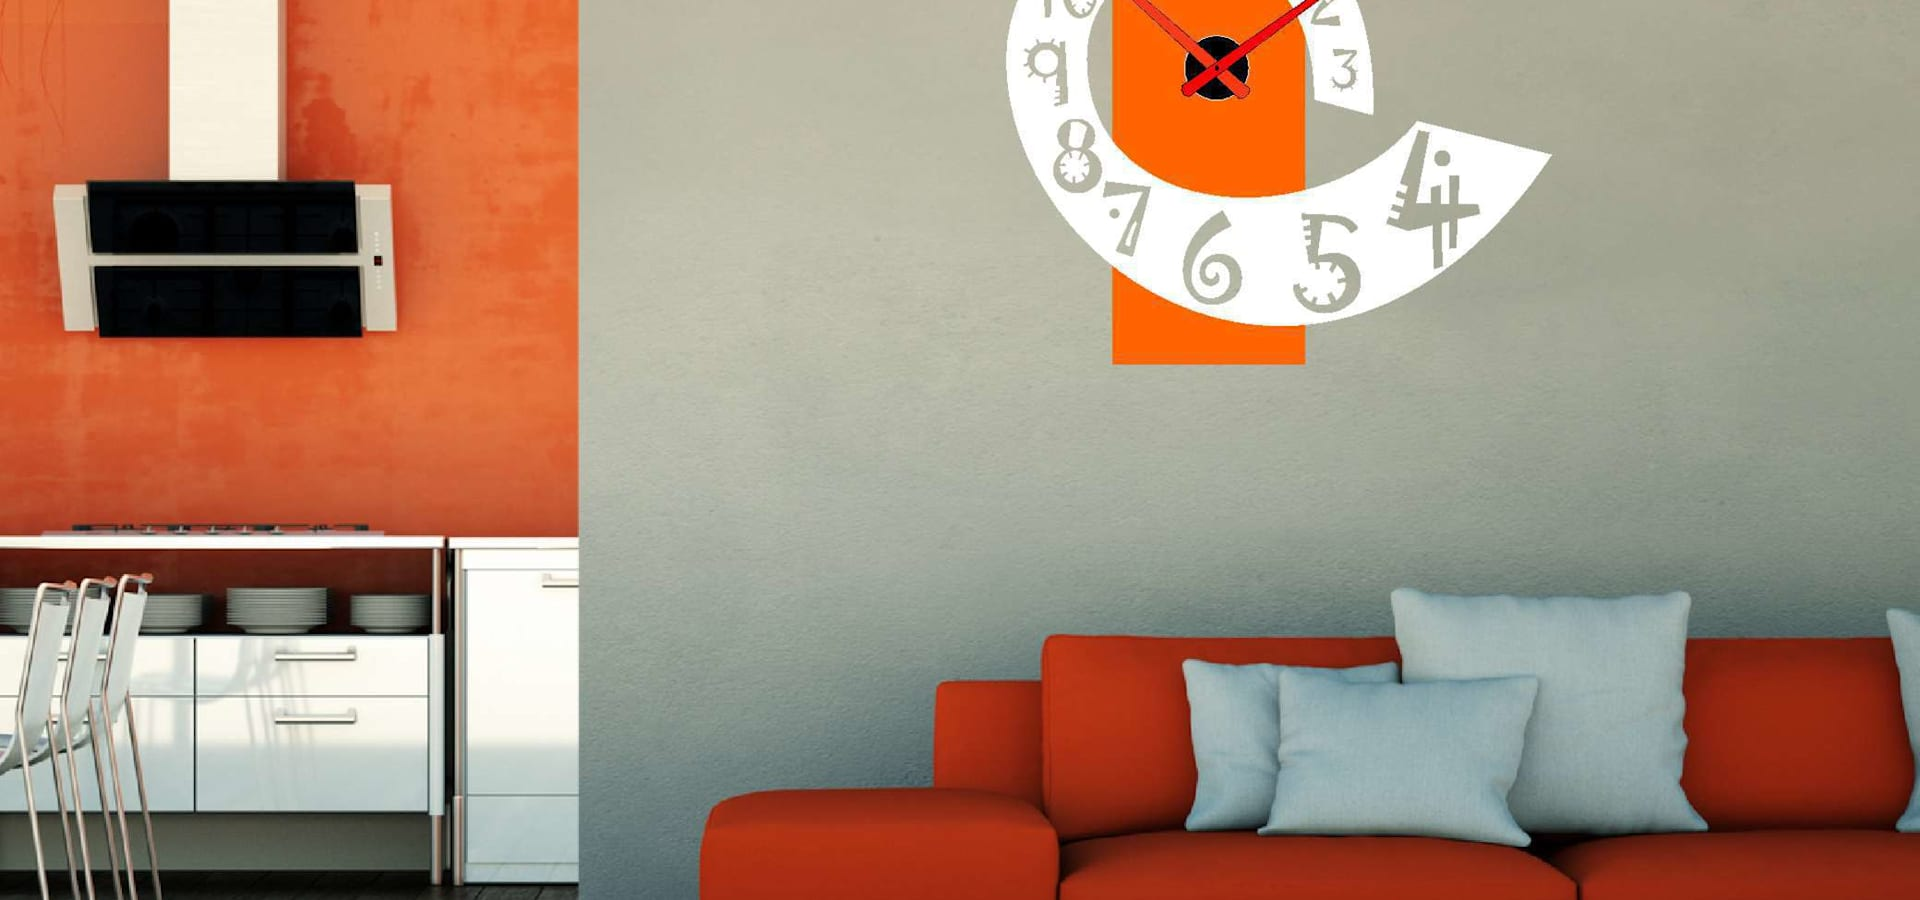 Reloj de pared vertical dise o y funcionalidad by for Disenos para paredes